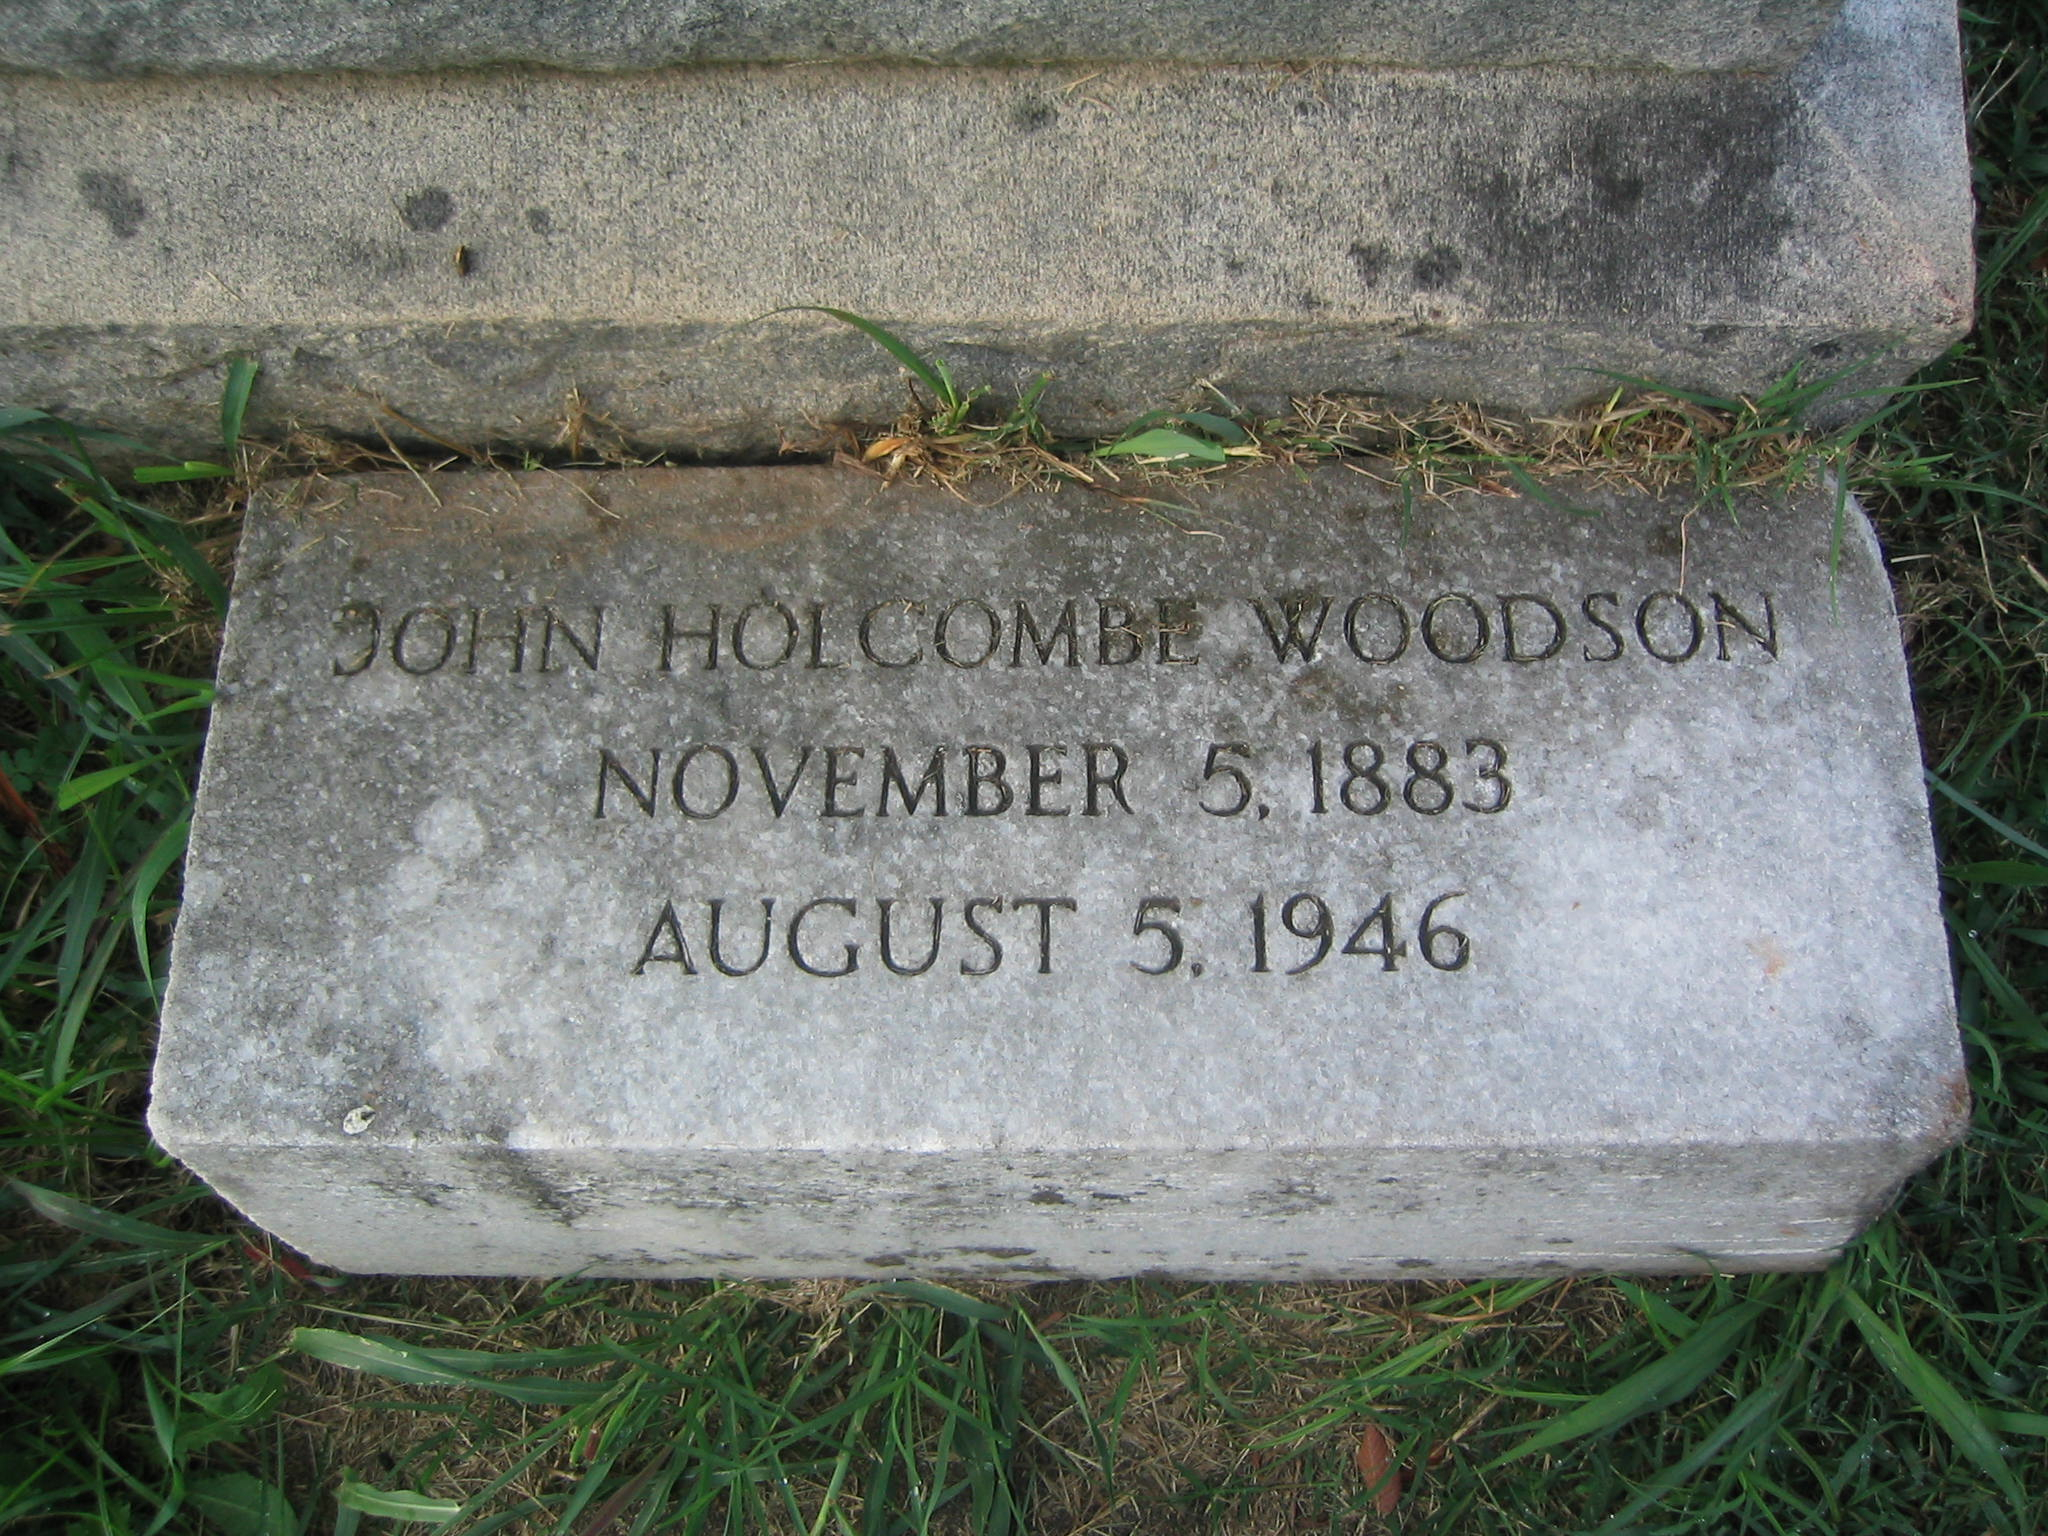 Sergeant John Holcombe Woodson | Southern Railway Police Department, Railroad Police